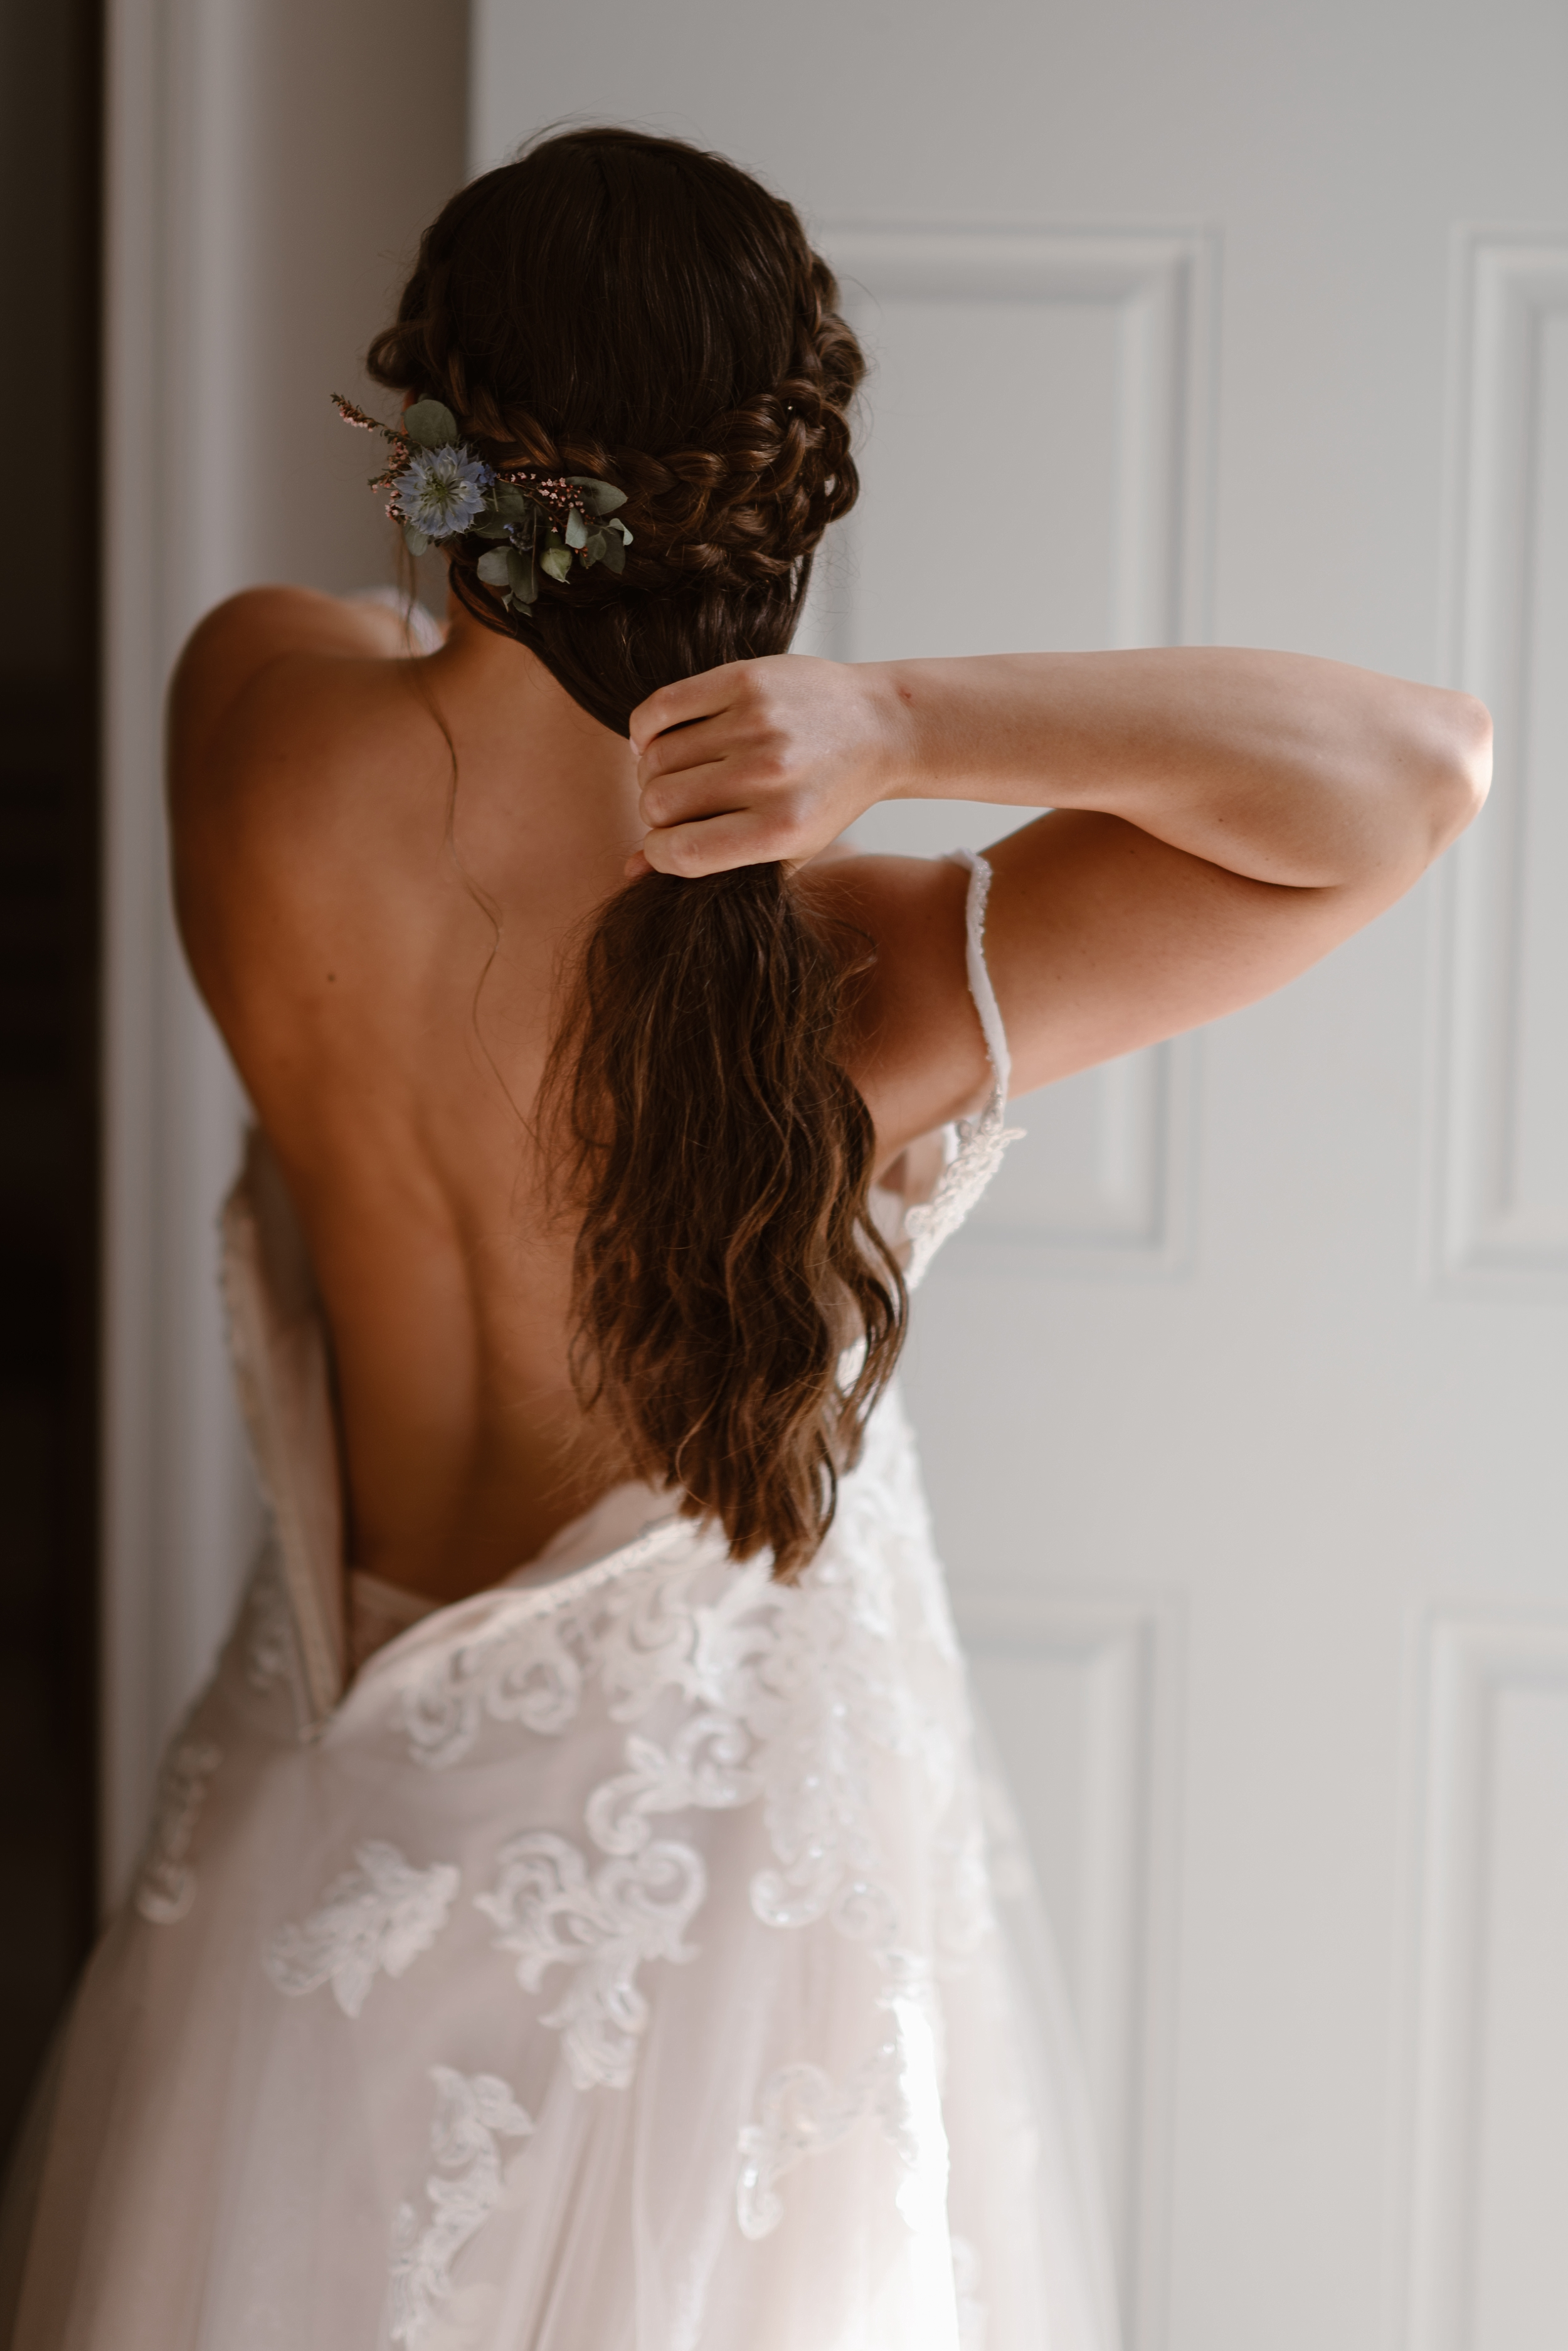 A bride is shown putting on her wedding dress in the doorway of her Airbnb before her Alaska destination wedding. In this photo, captured by elopement photographers Adventure Instead, the bride is shown from the back with her dress halfway zipped, her hand holds her hair away from the zipper displaying a an elaborate braid with flowers.